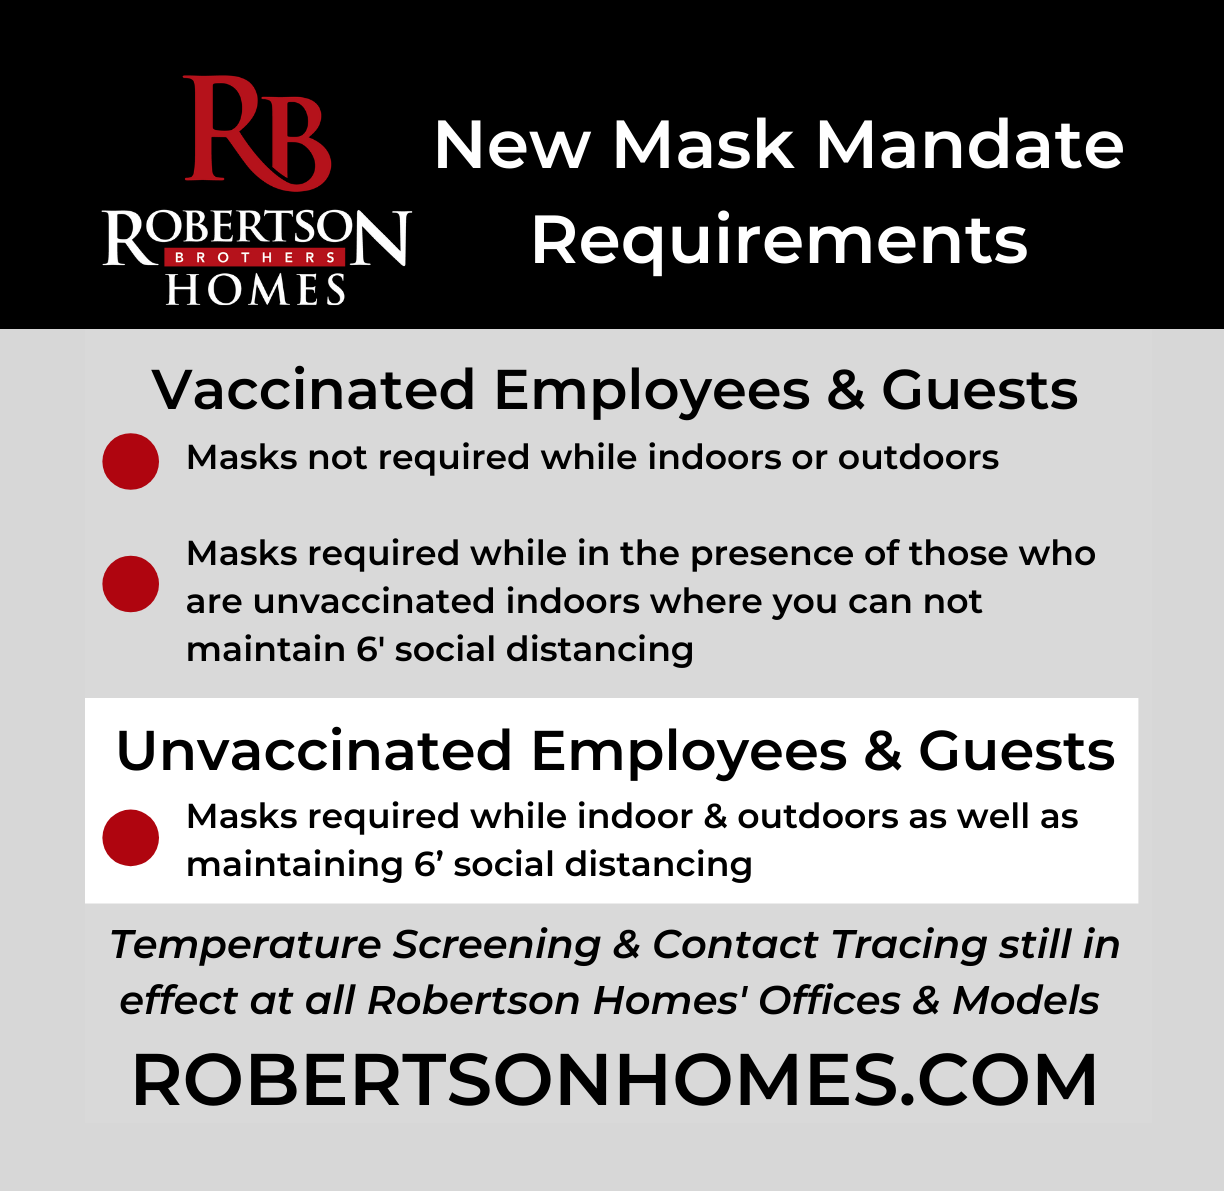 Mask mandate requirements for vaccinated and unvaccinated employees of community development business Robertson Homes in Michigan